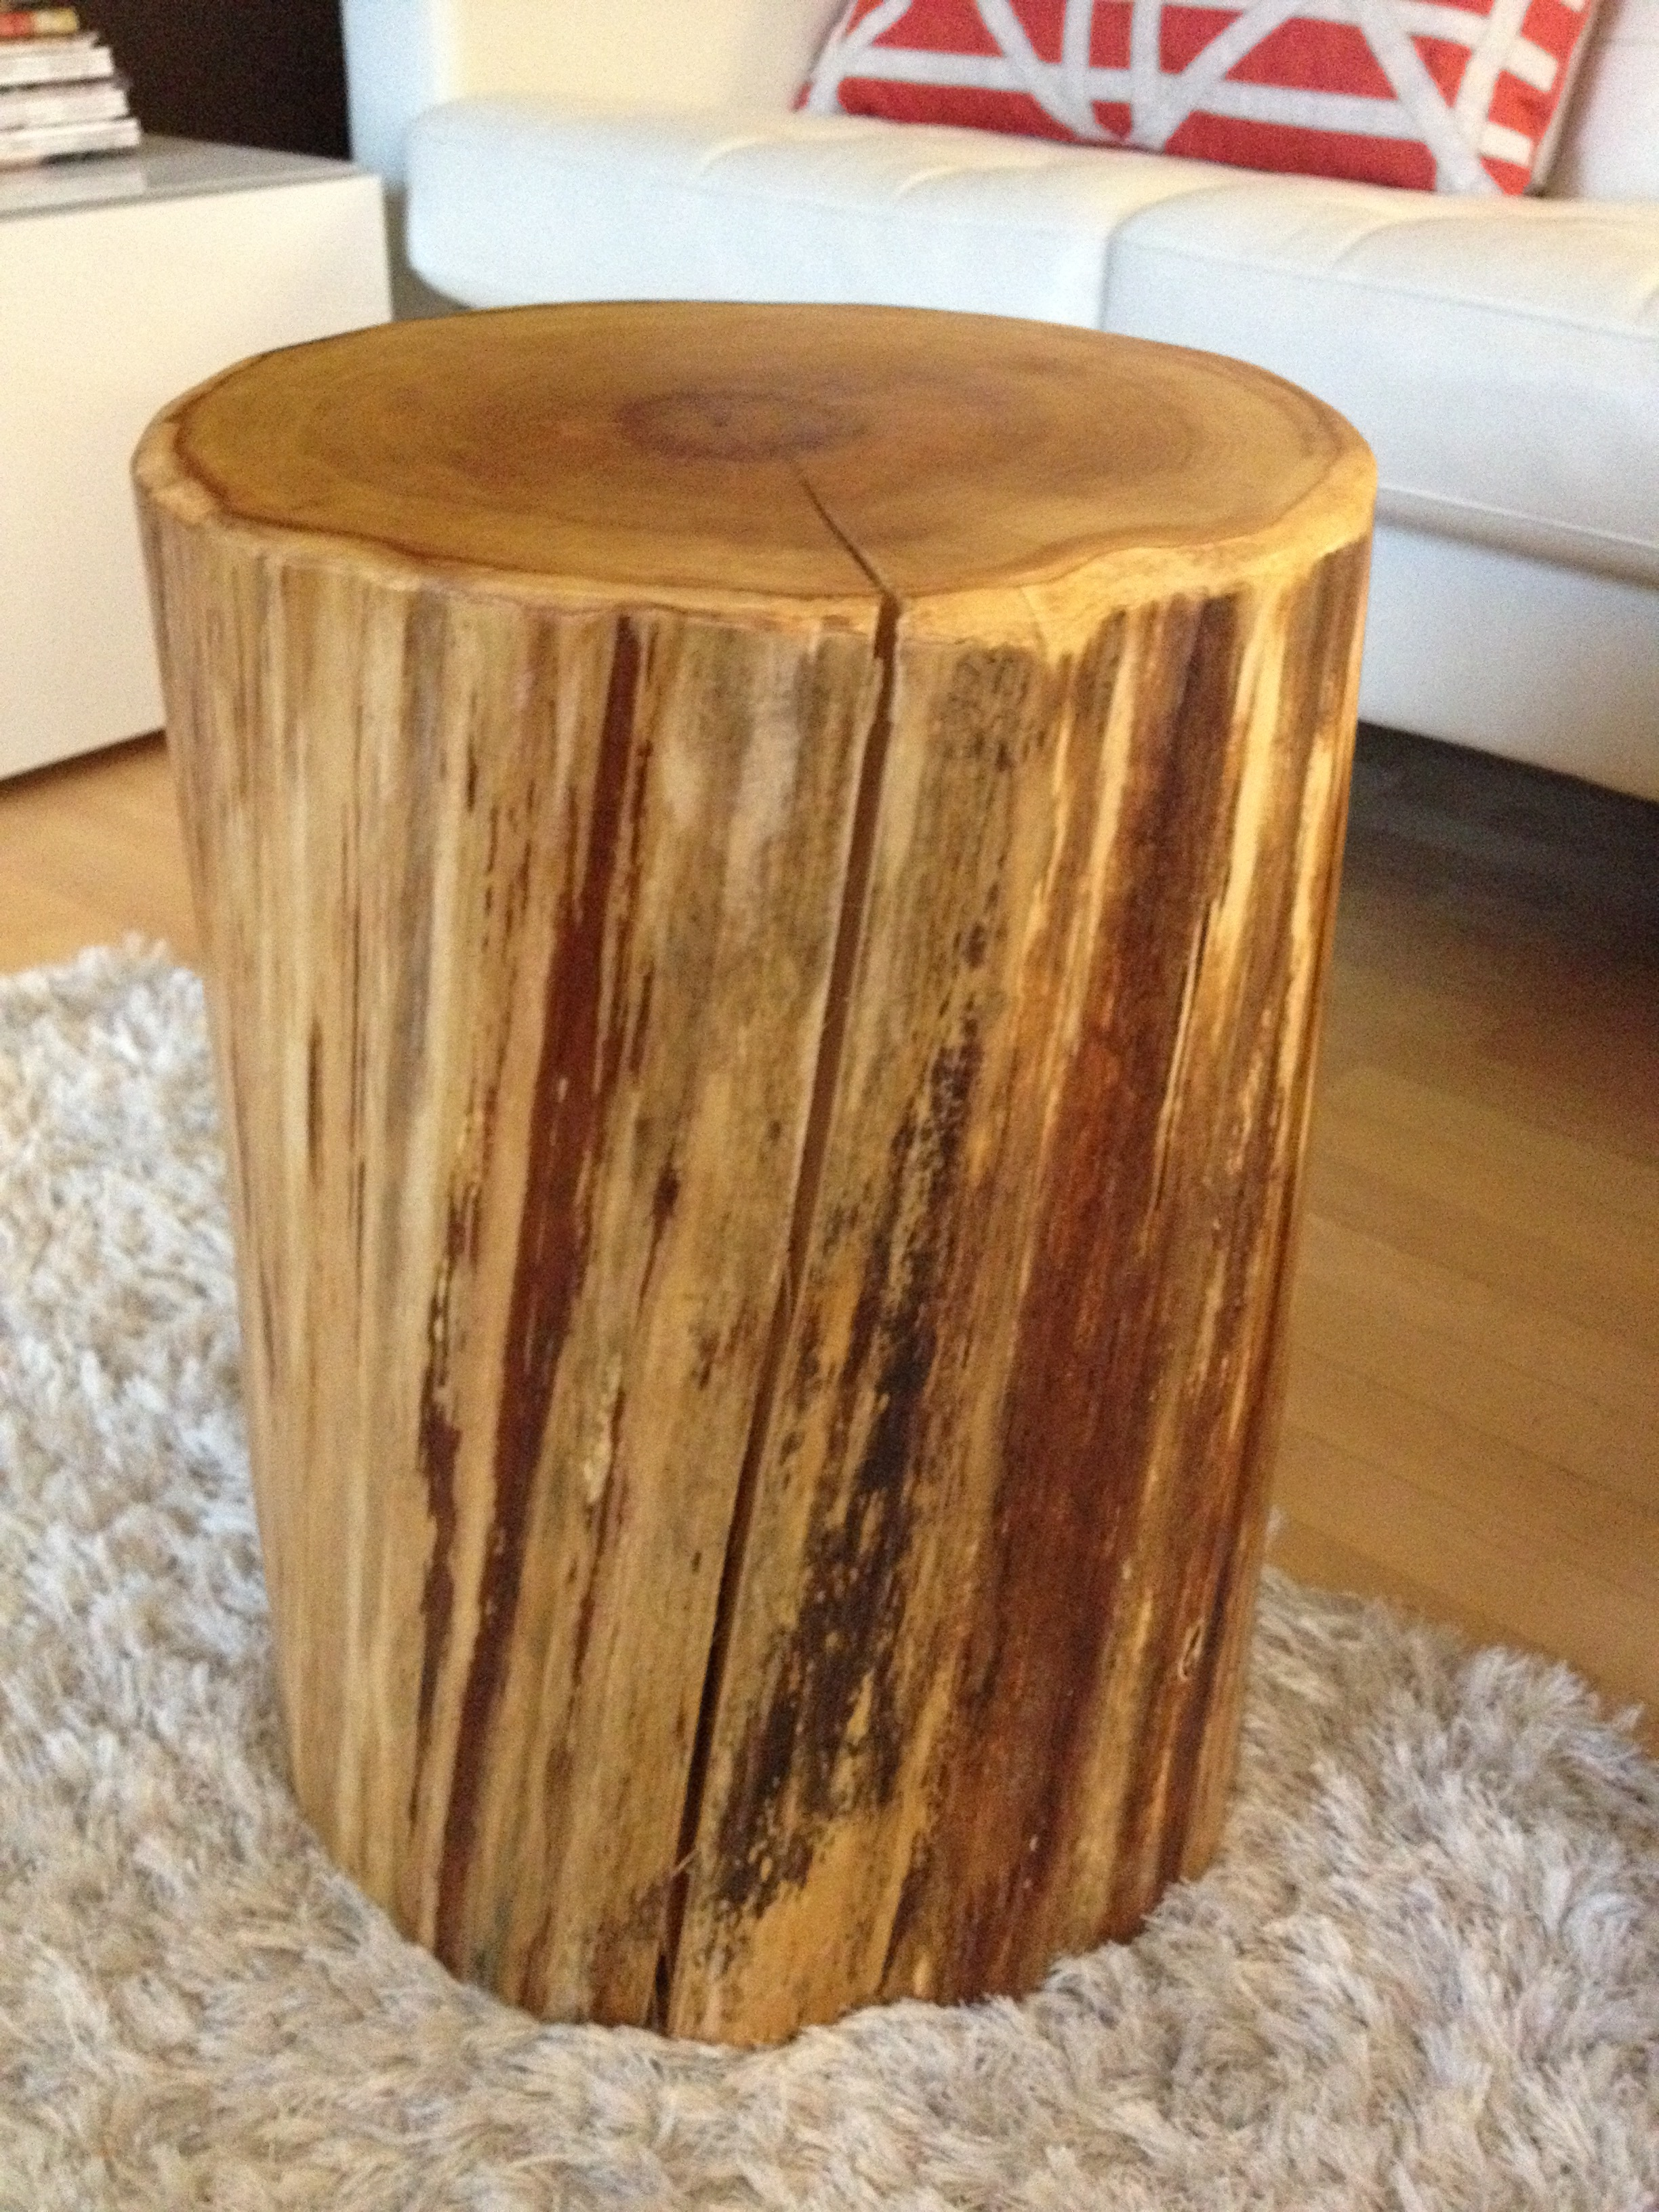 cedar stump side table